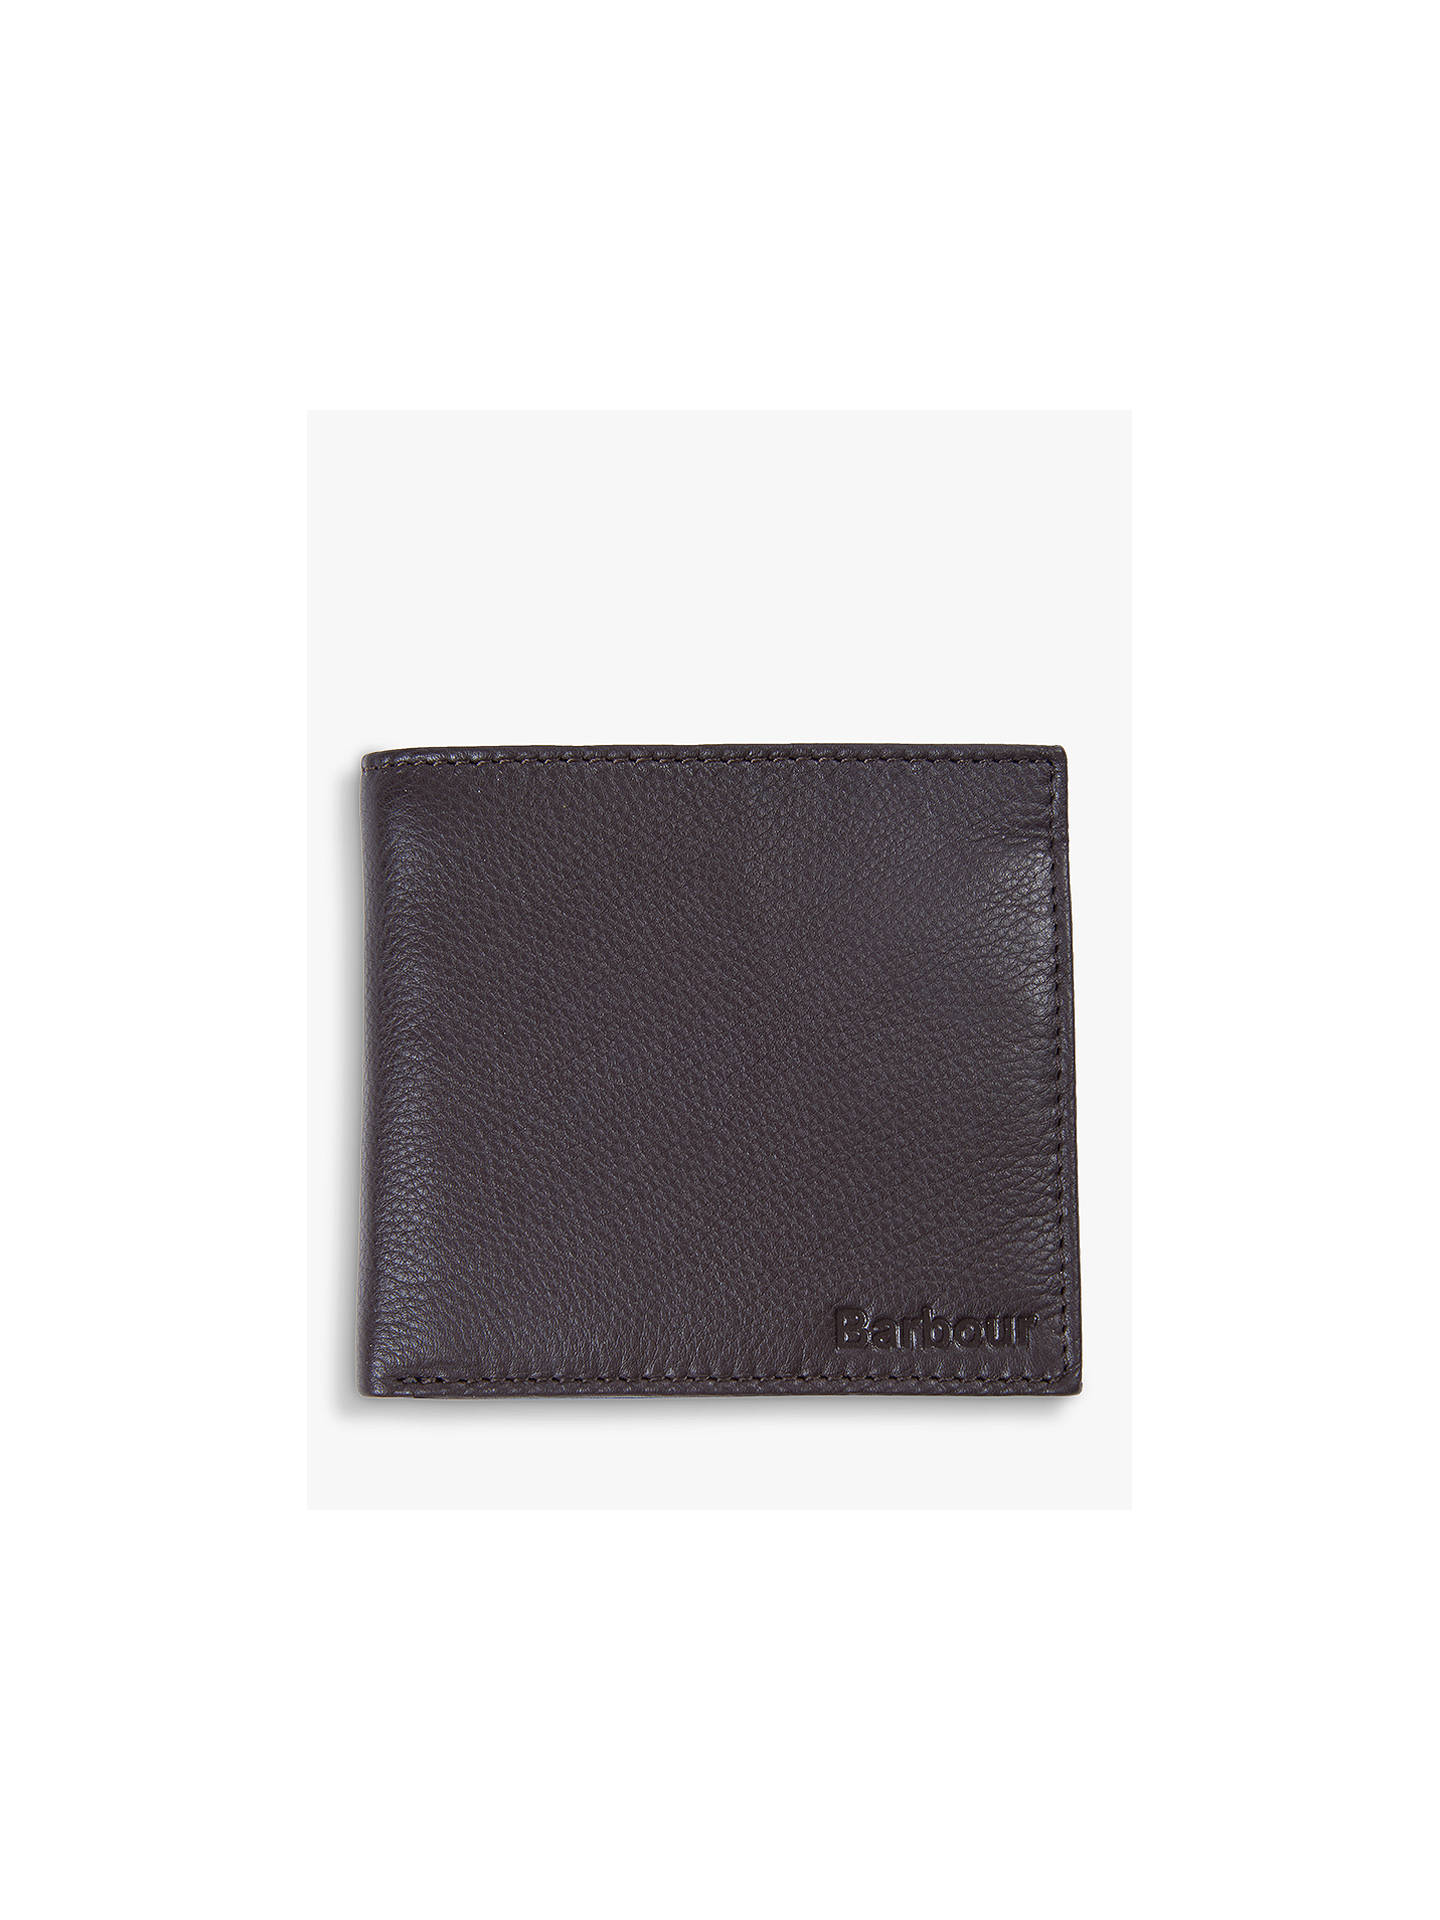 ca08e14a ... Buy Barbour Grain Leather Wallet, Brown Online at johnlewis.com ...